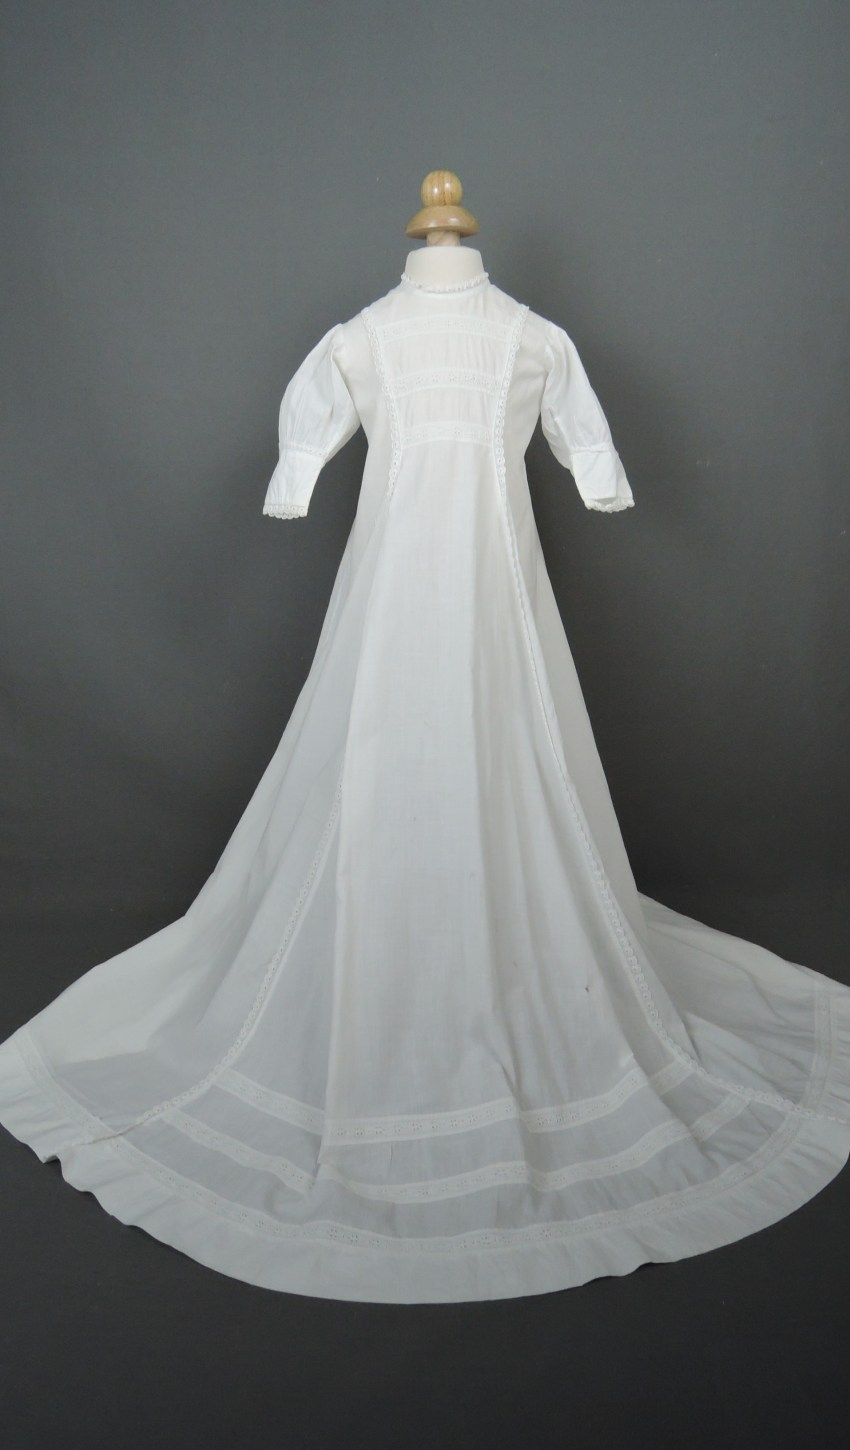 Antique 1910s Baby Christening Gown, Long White Cotton with Embroidered Lace